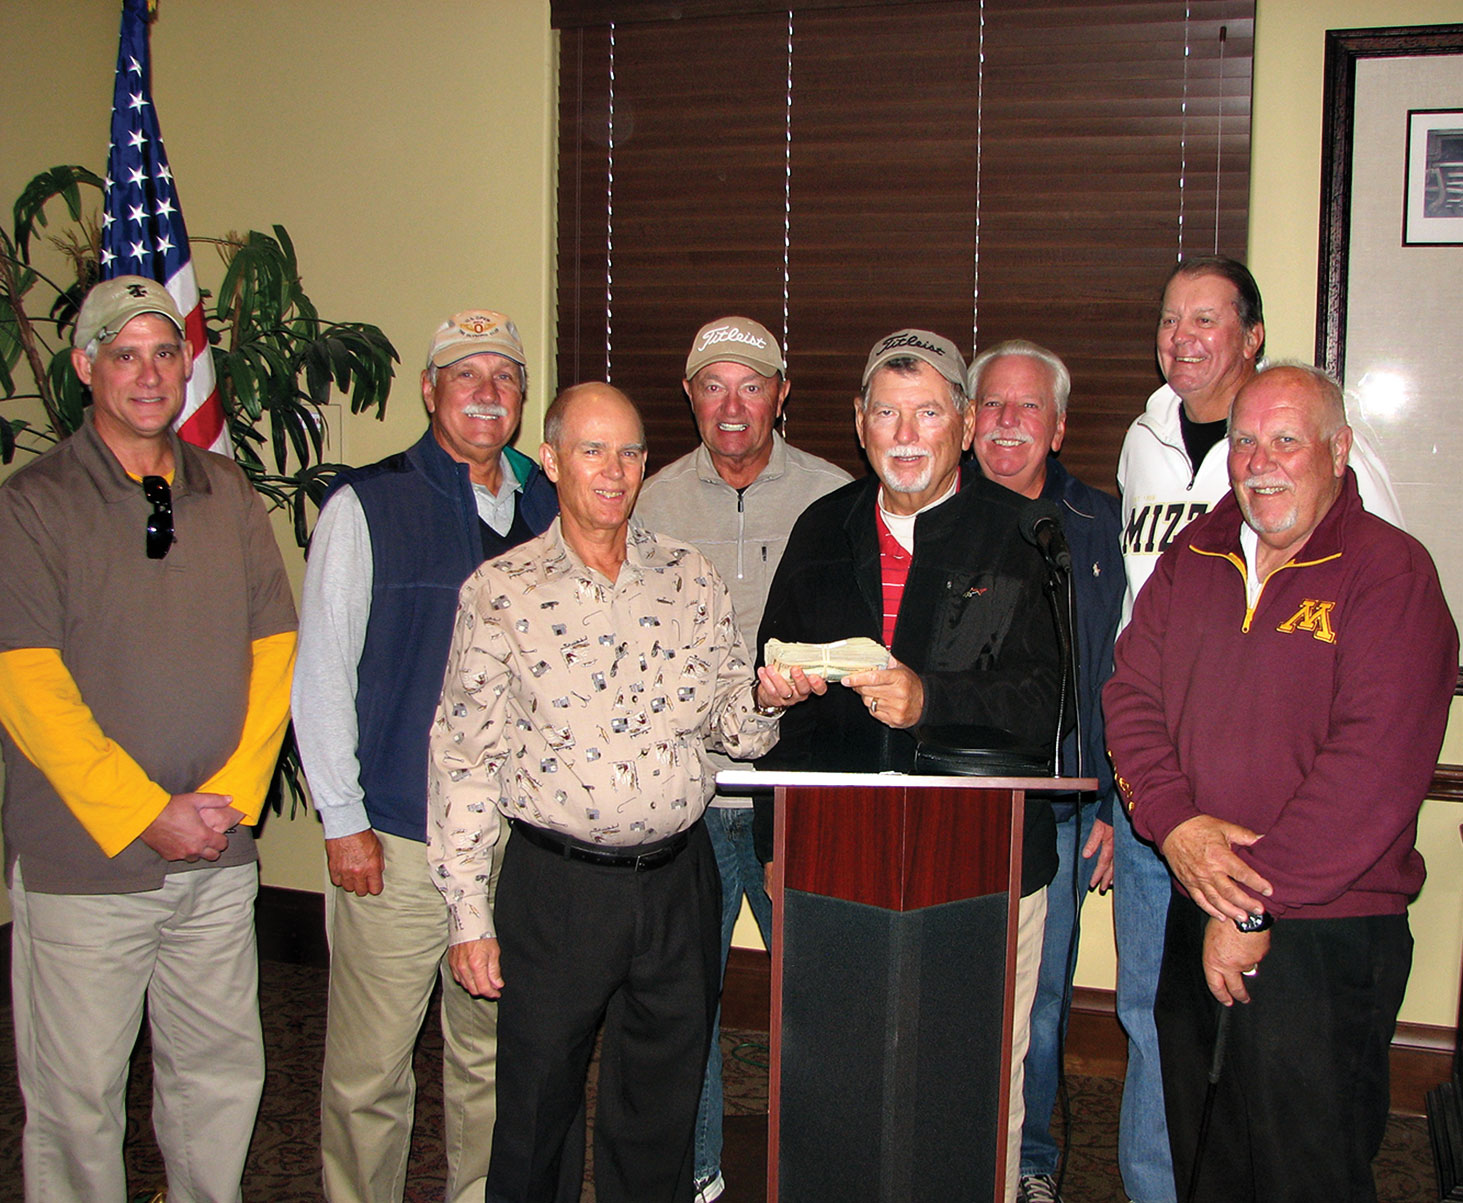 SOT Secretary Bill Wright, front left, and Doyle Hicks with the Featherheads